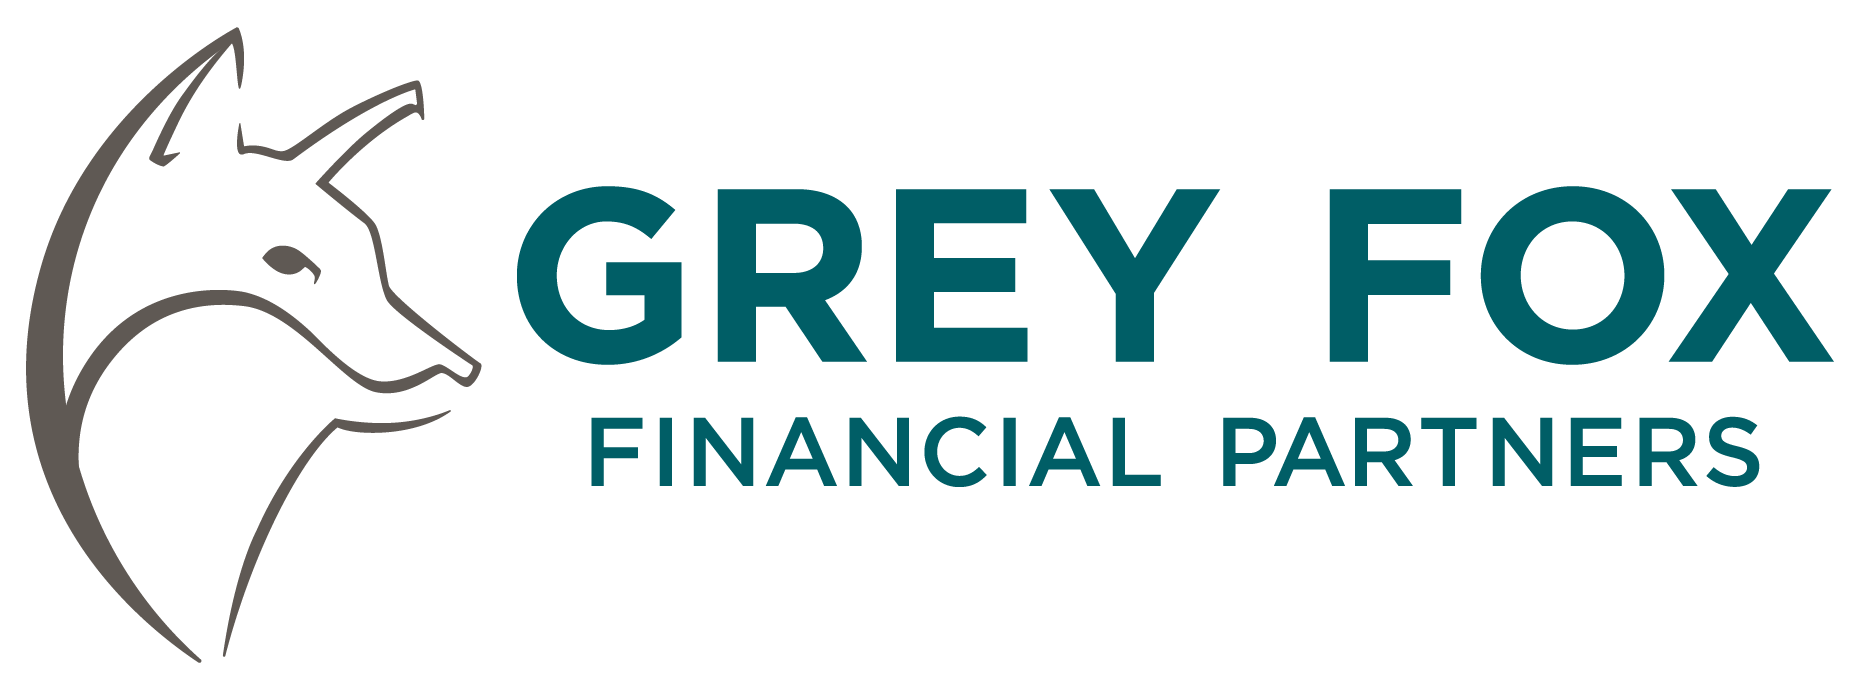 Logo for Grey Fox Financial Partners